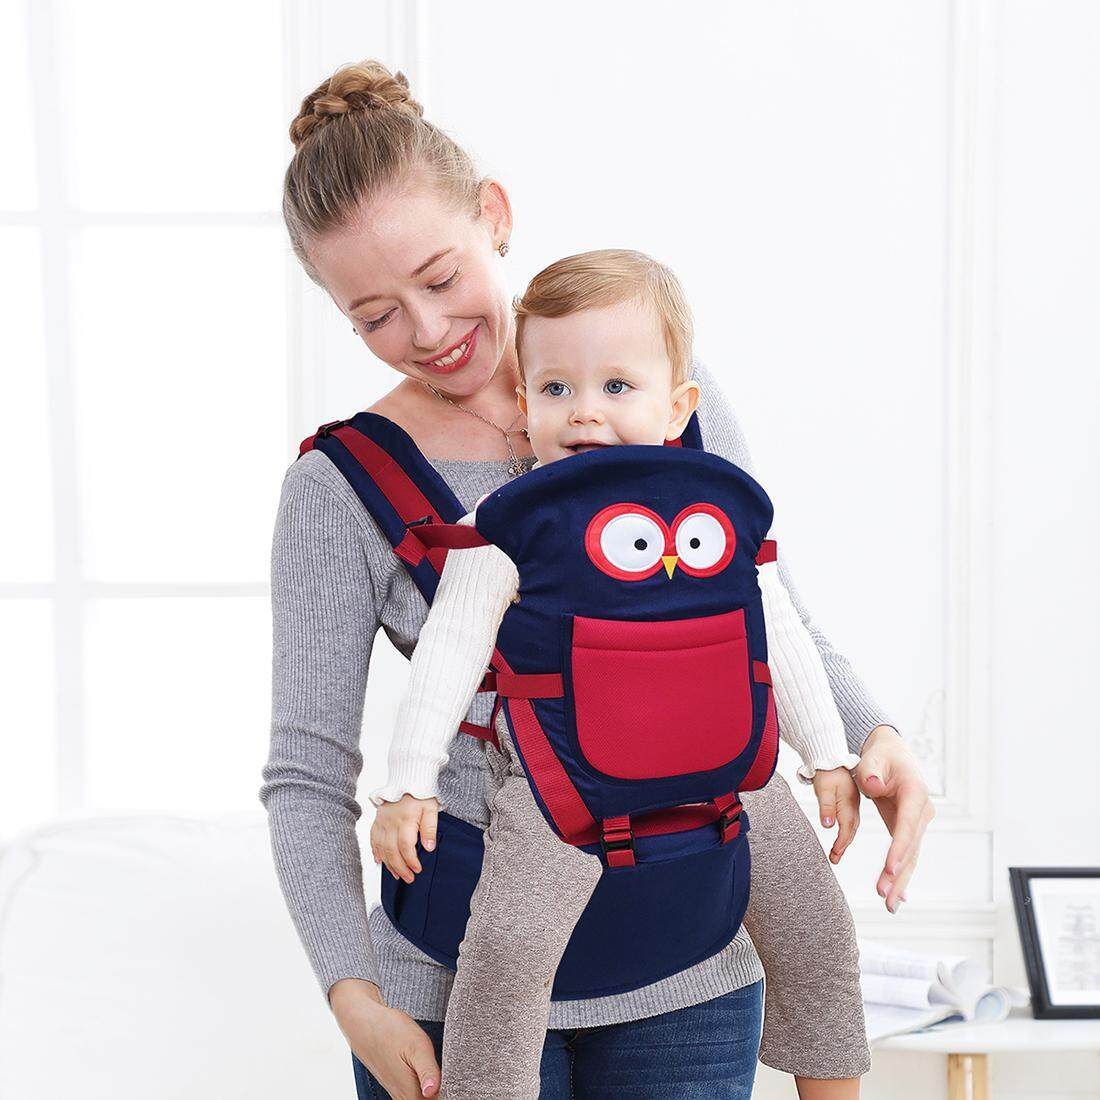 Kangaroo Soft Baby Carrier With Hip Seat Breathable Summer Hipseat Front Backpacks Portabebe Multifunction By Baby Bao.